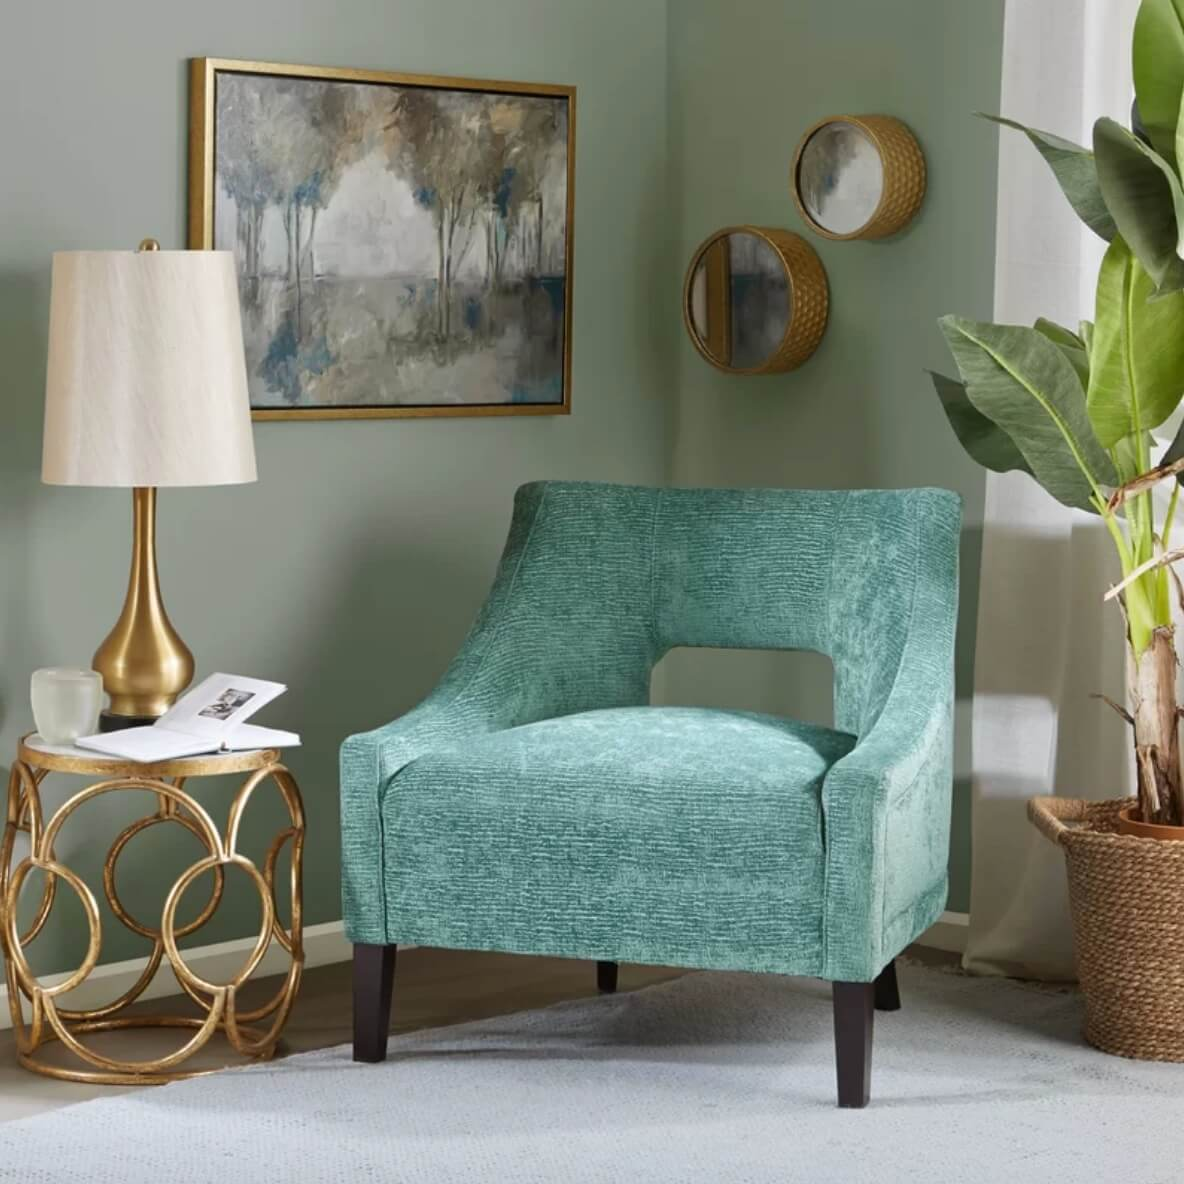 Modern Teal Chair : contemporary accent chair - lorbestier.org